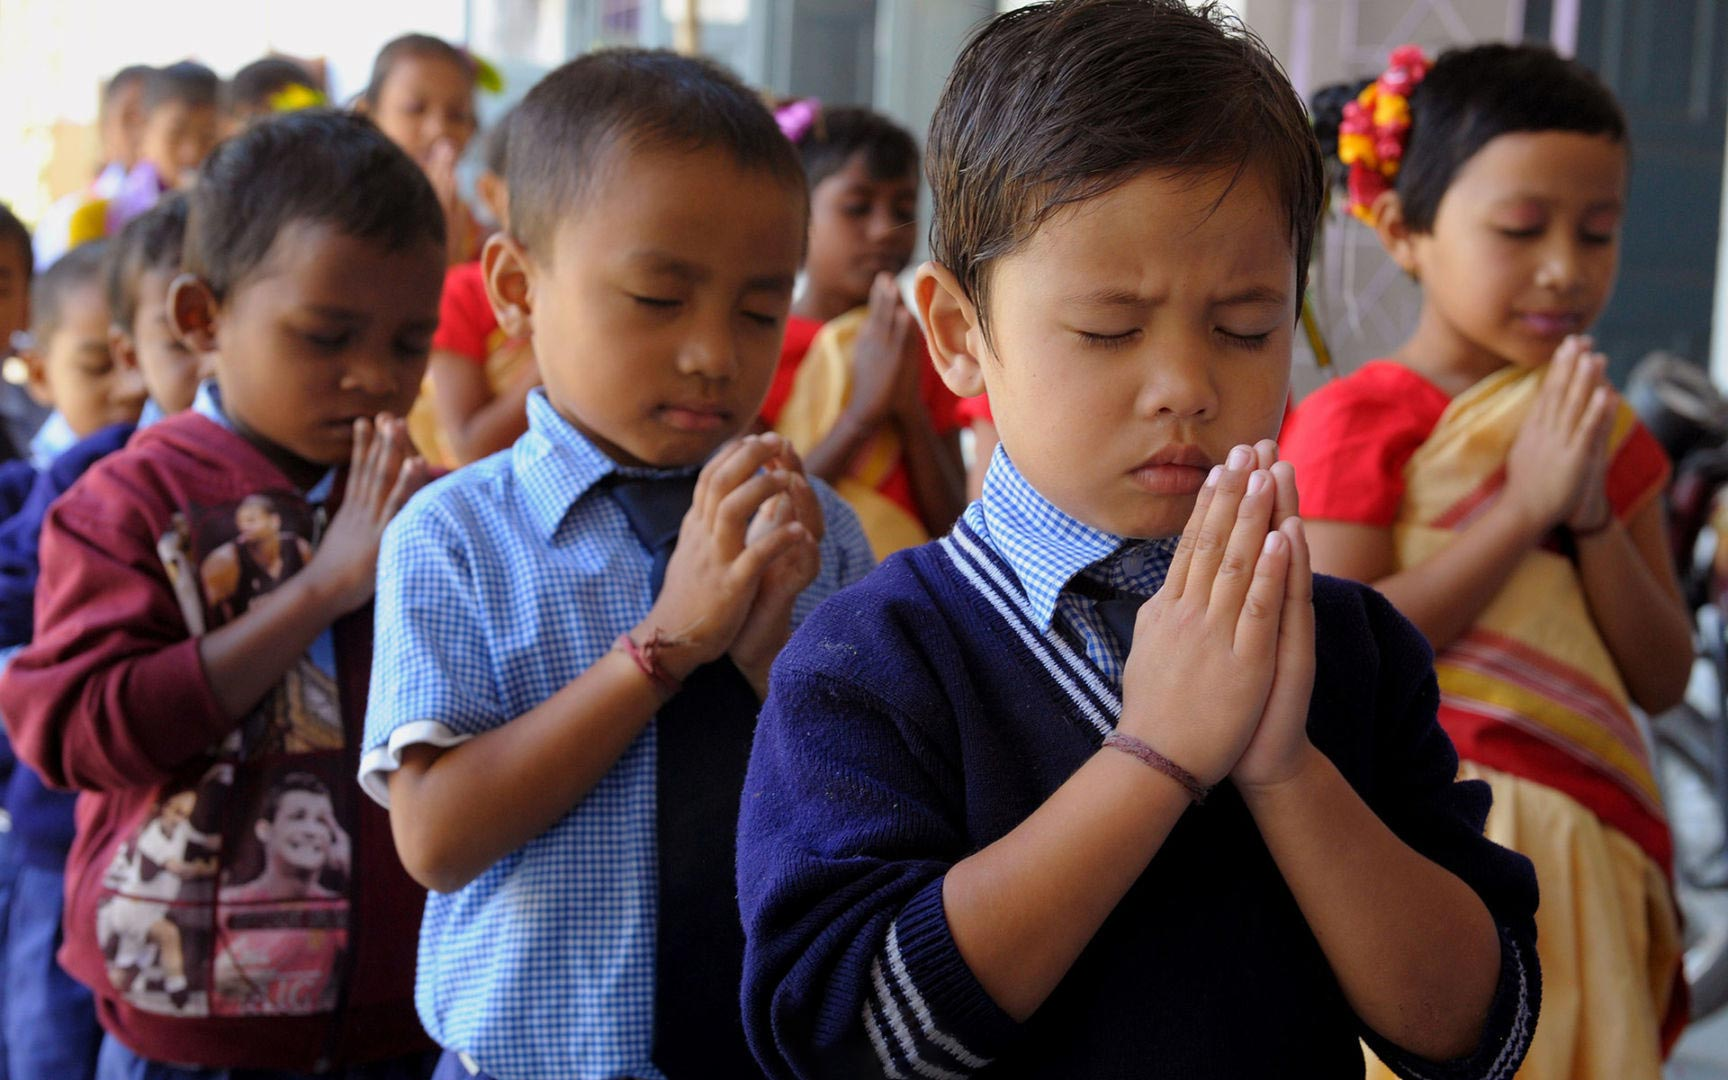 Children praying with their hands folded